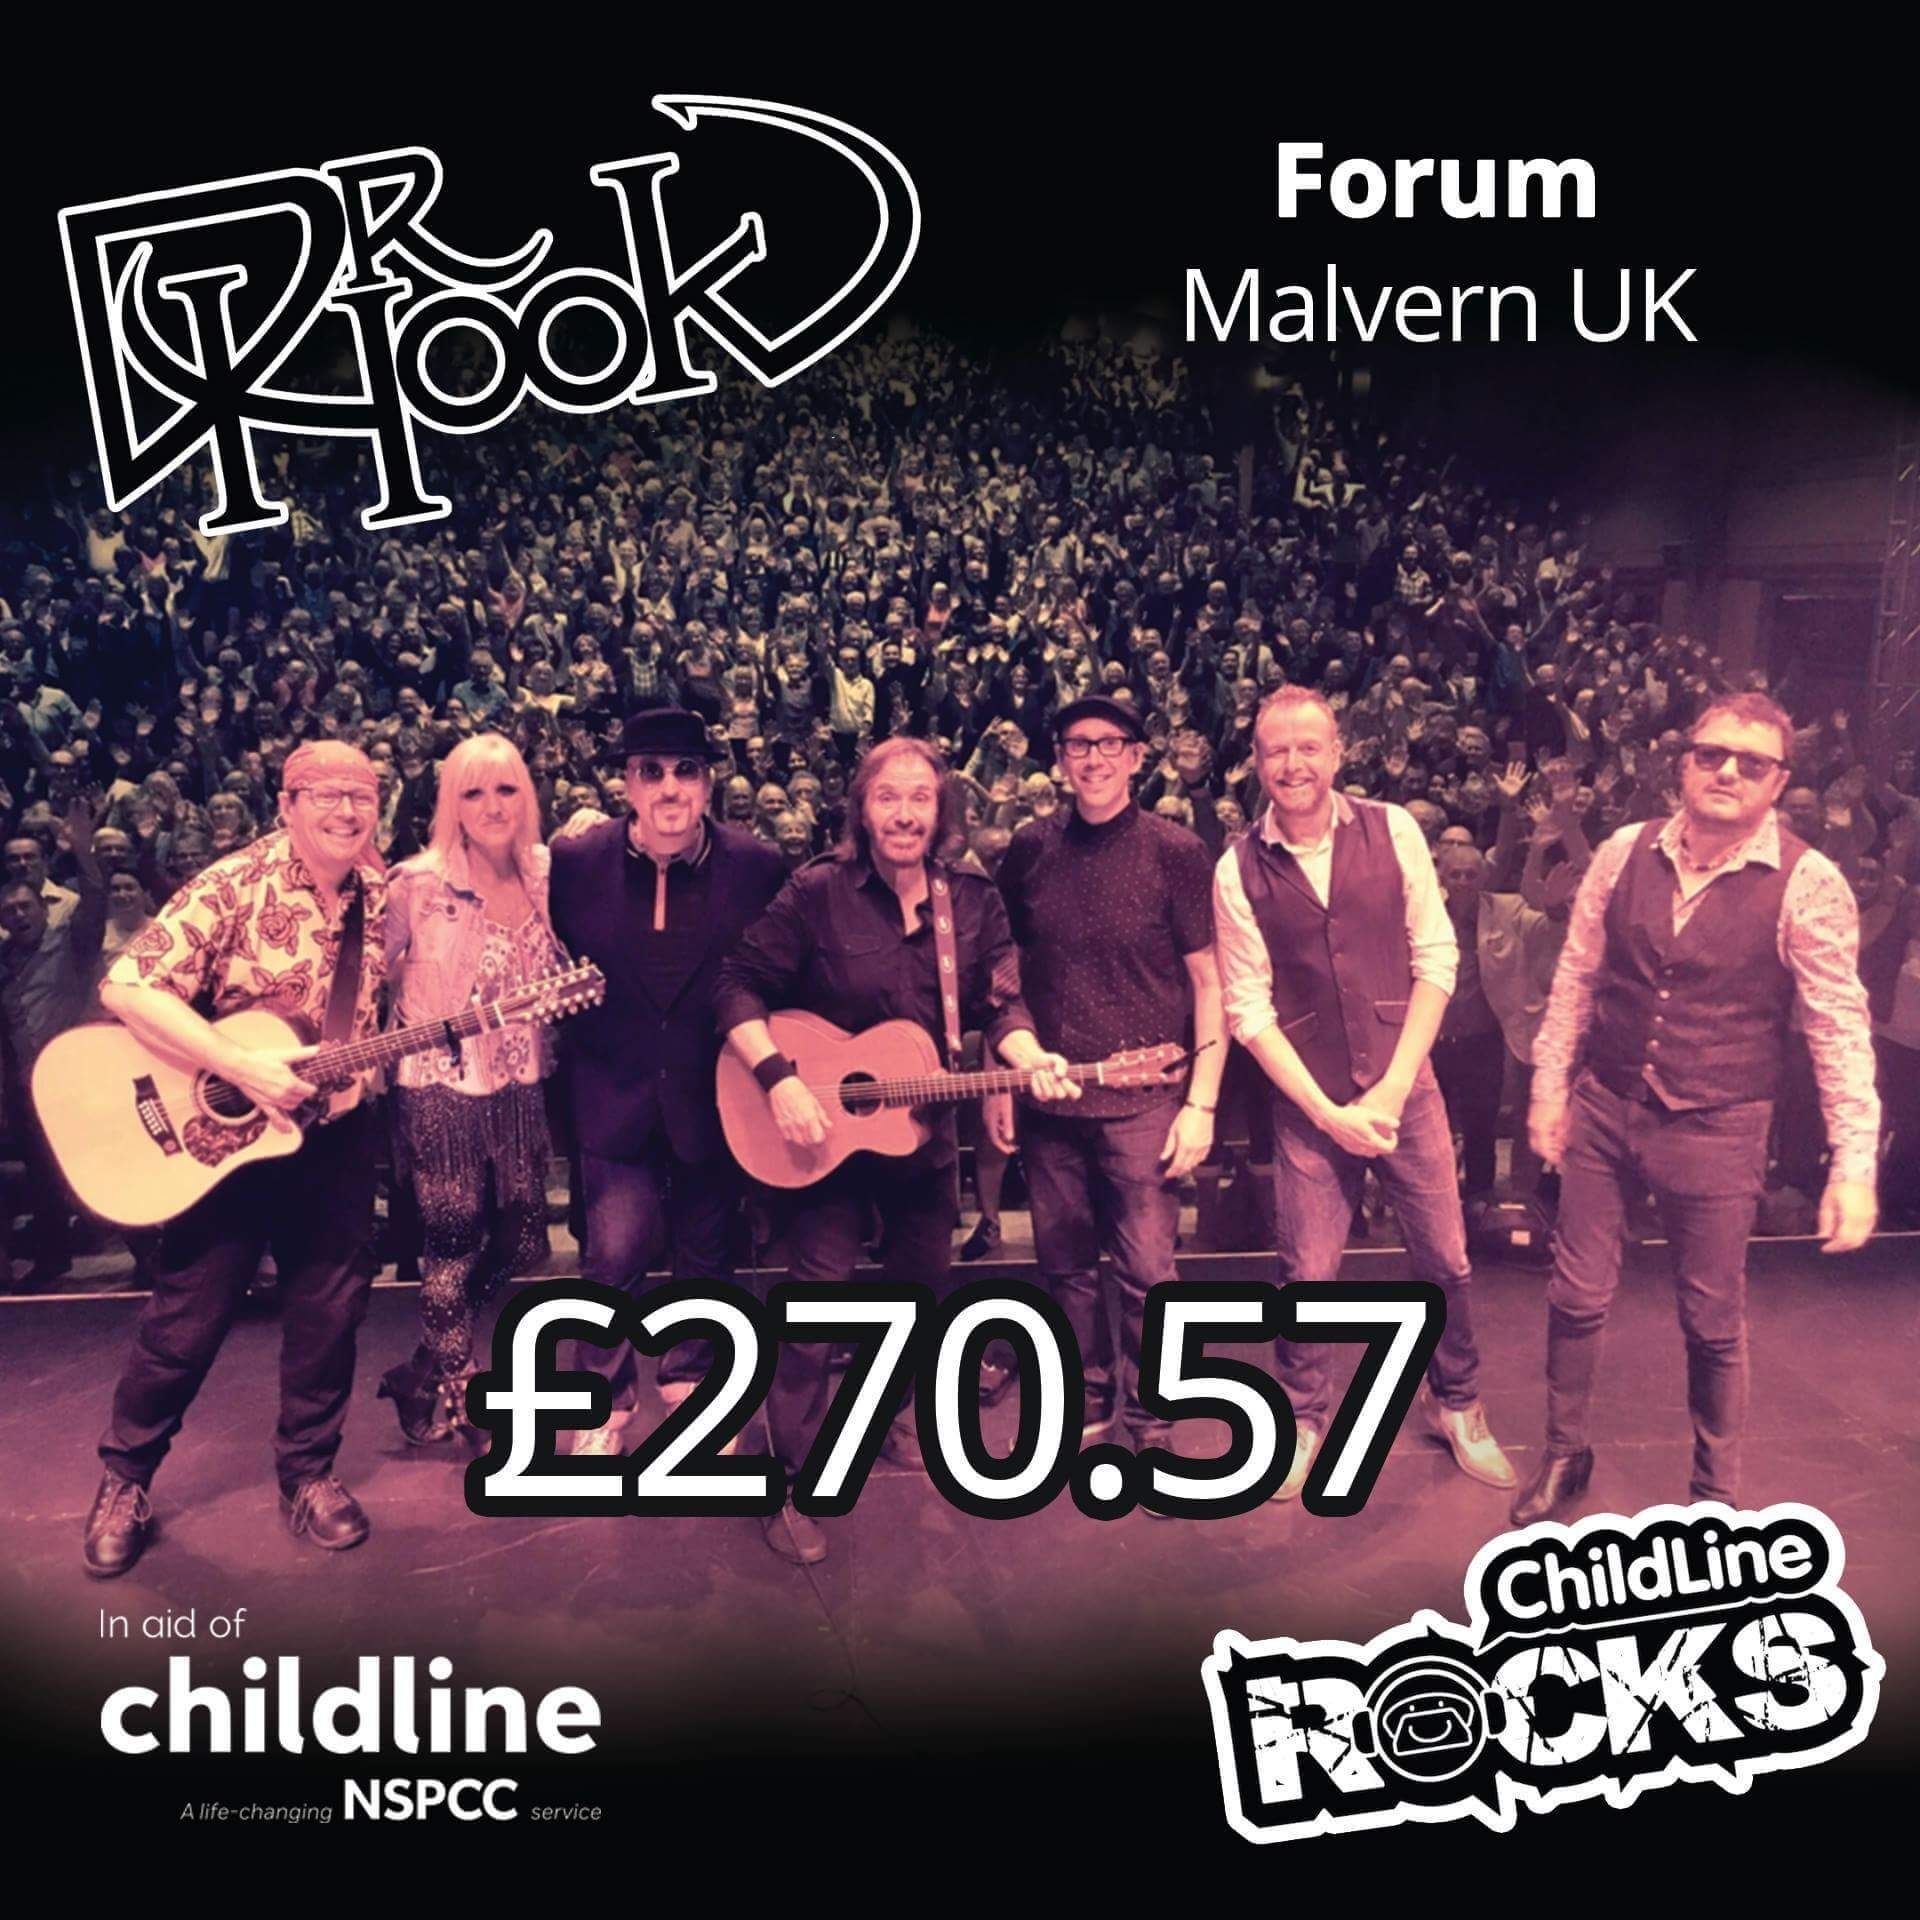 Dr Hook - Fundraising 2017 - Childline NSPCC - Malvern UK